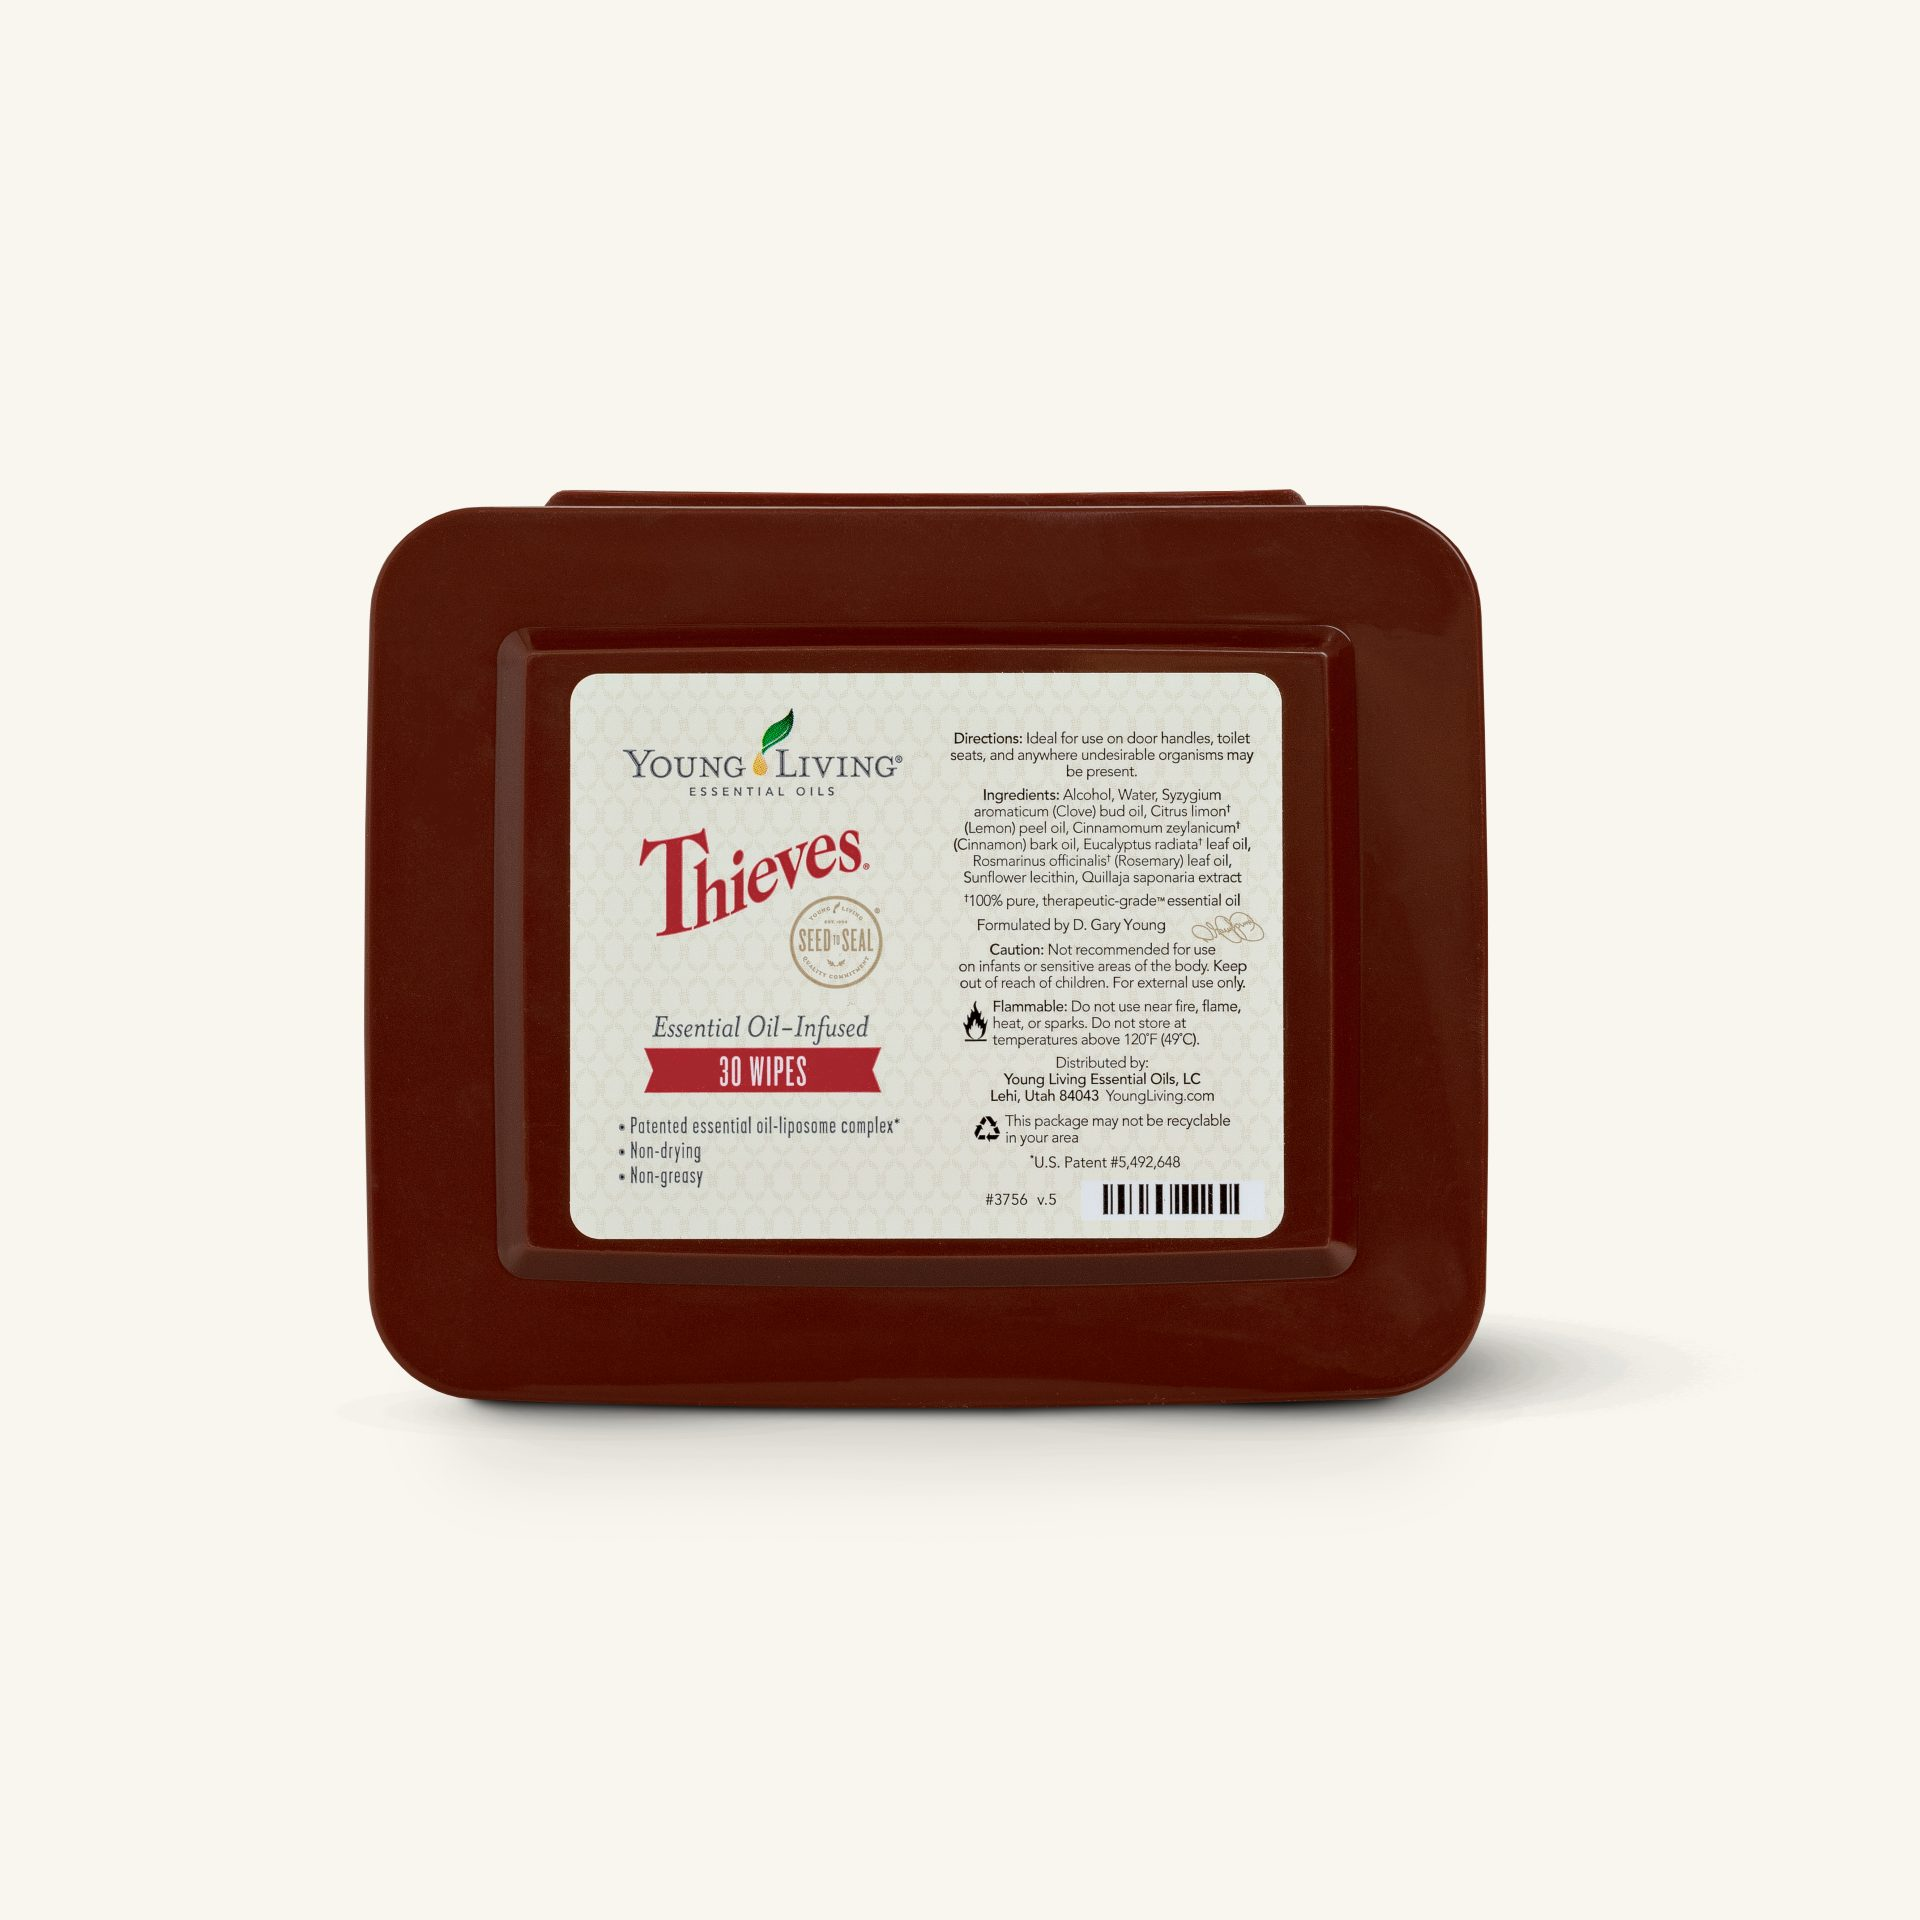 Thieves Wipes - Young Living Essential Oils